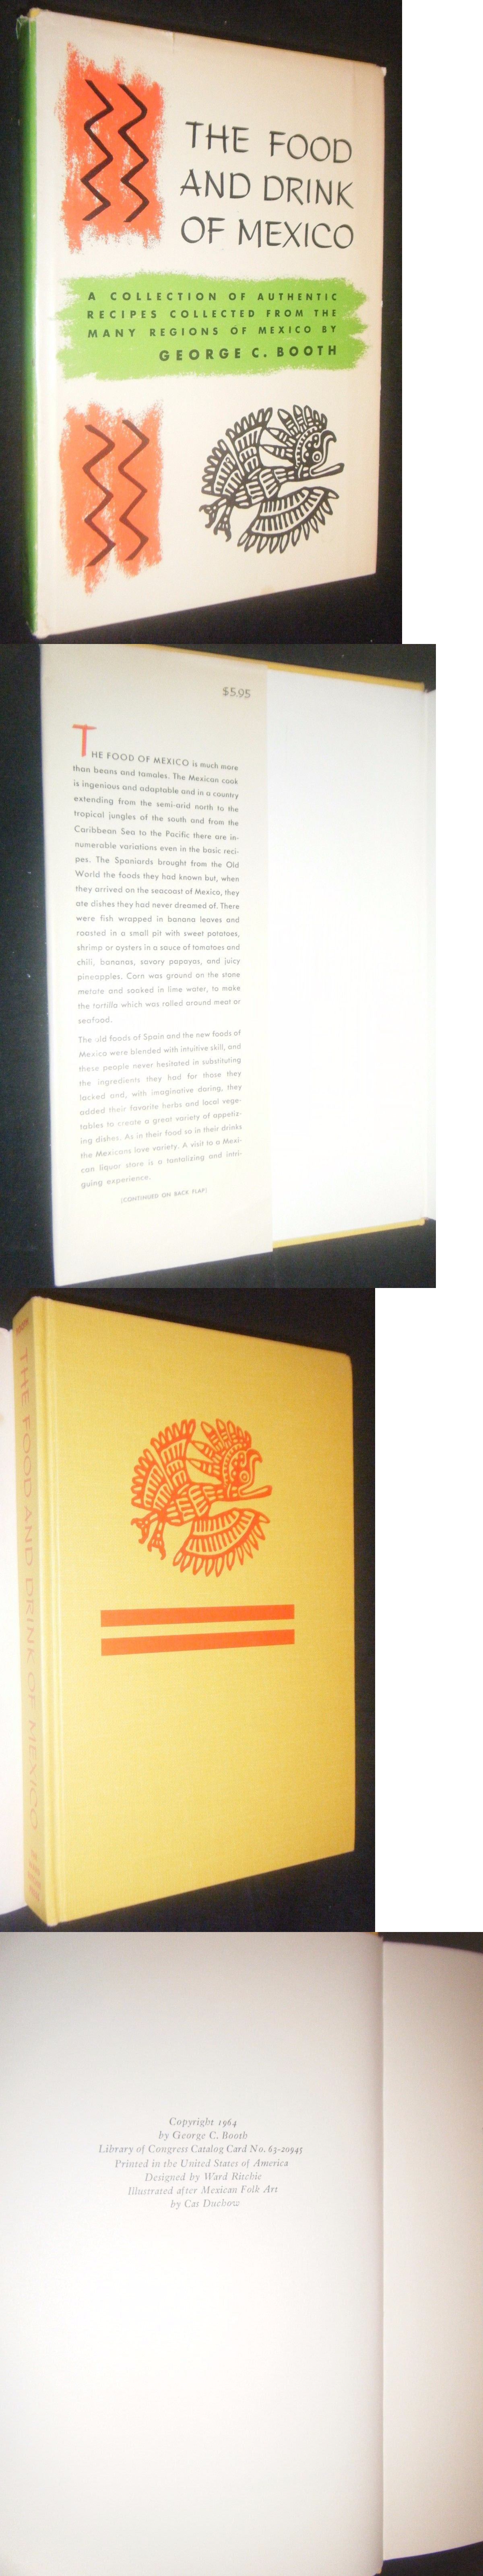 Food And Drink: The Food And Drink Of Mexico By George Booth Cas Duchow Ward Ritchie Press 1964 -> BUY IT NOW ONLY: $49.95 on eBay!